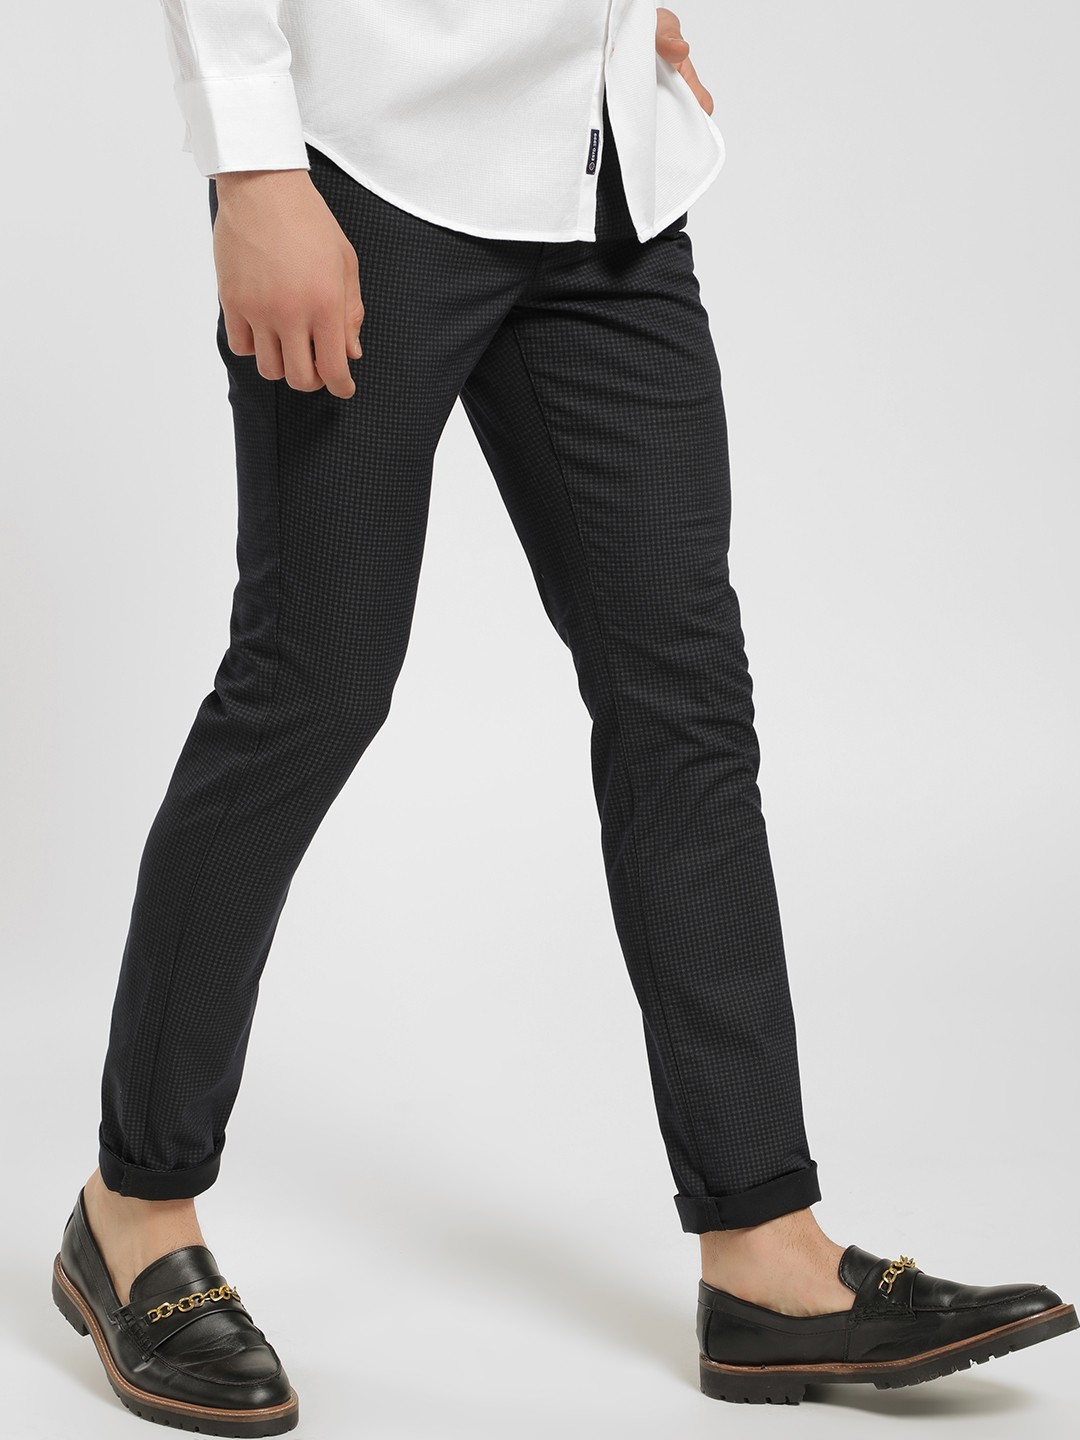 SCULLERS Black Micro-Check Print Slim Trousers 1